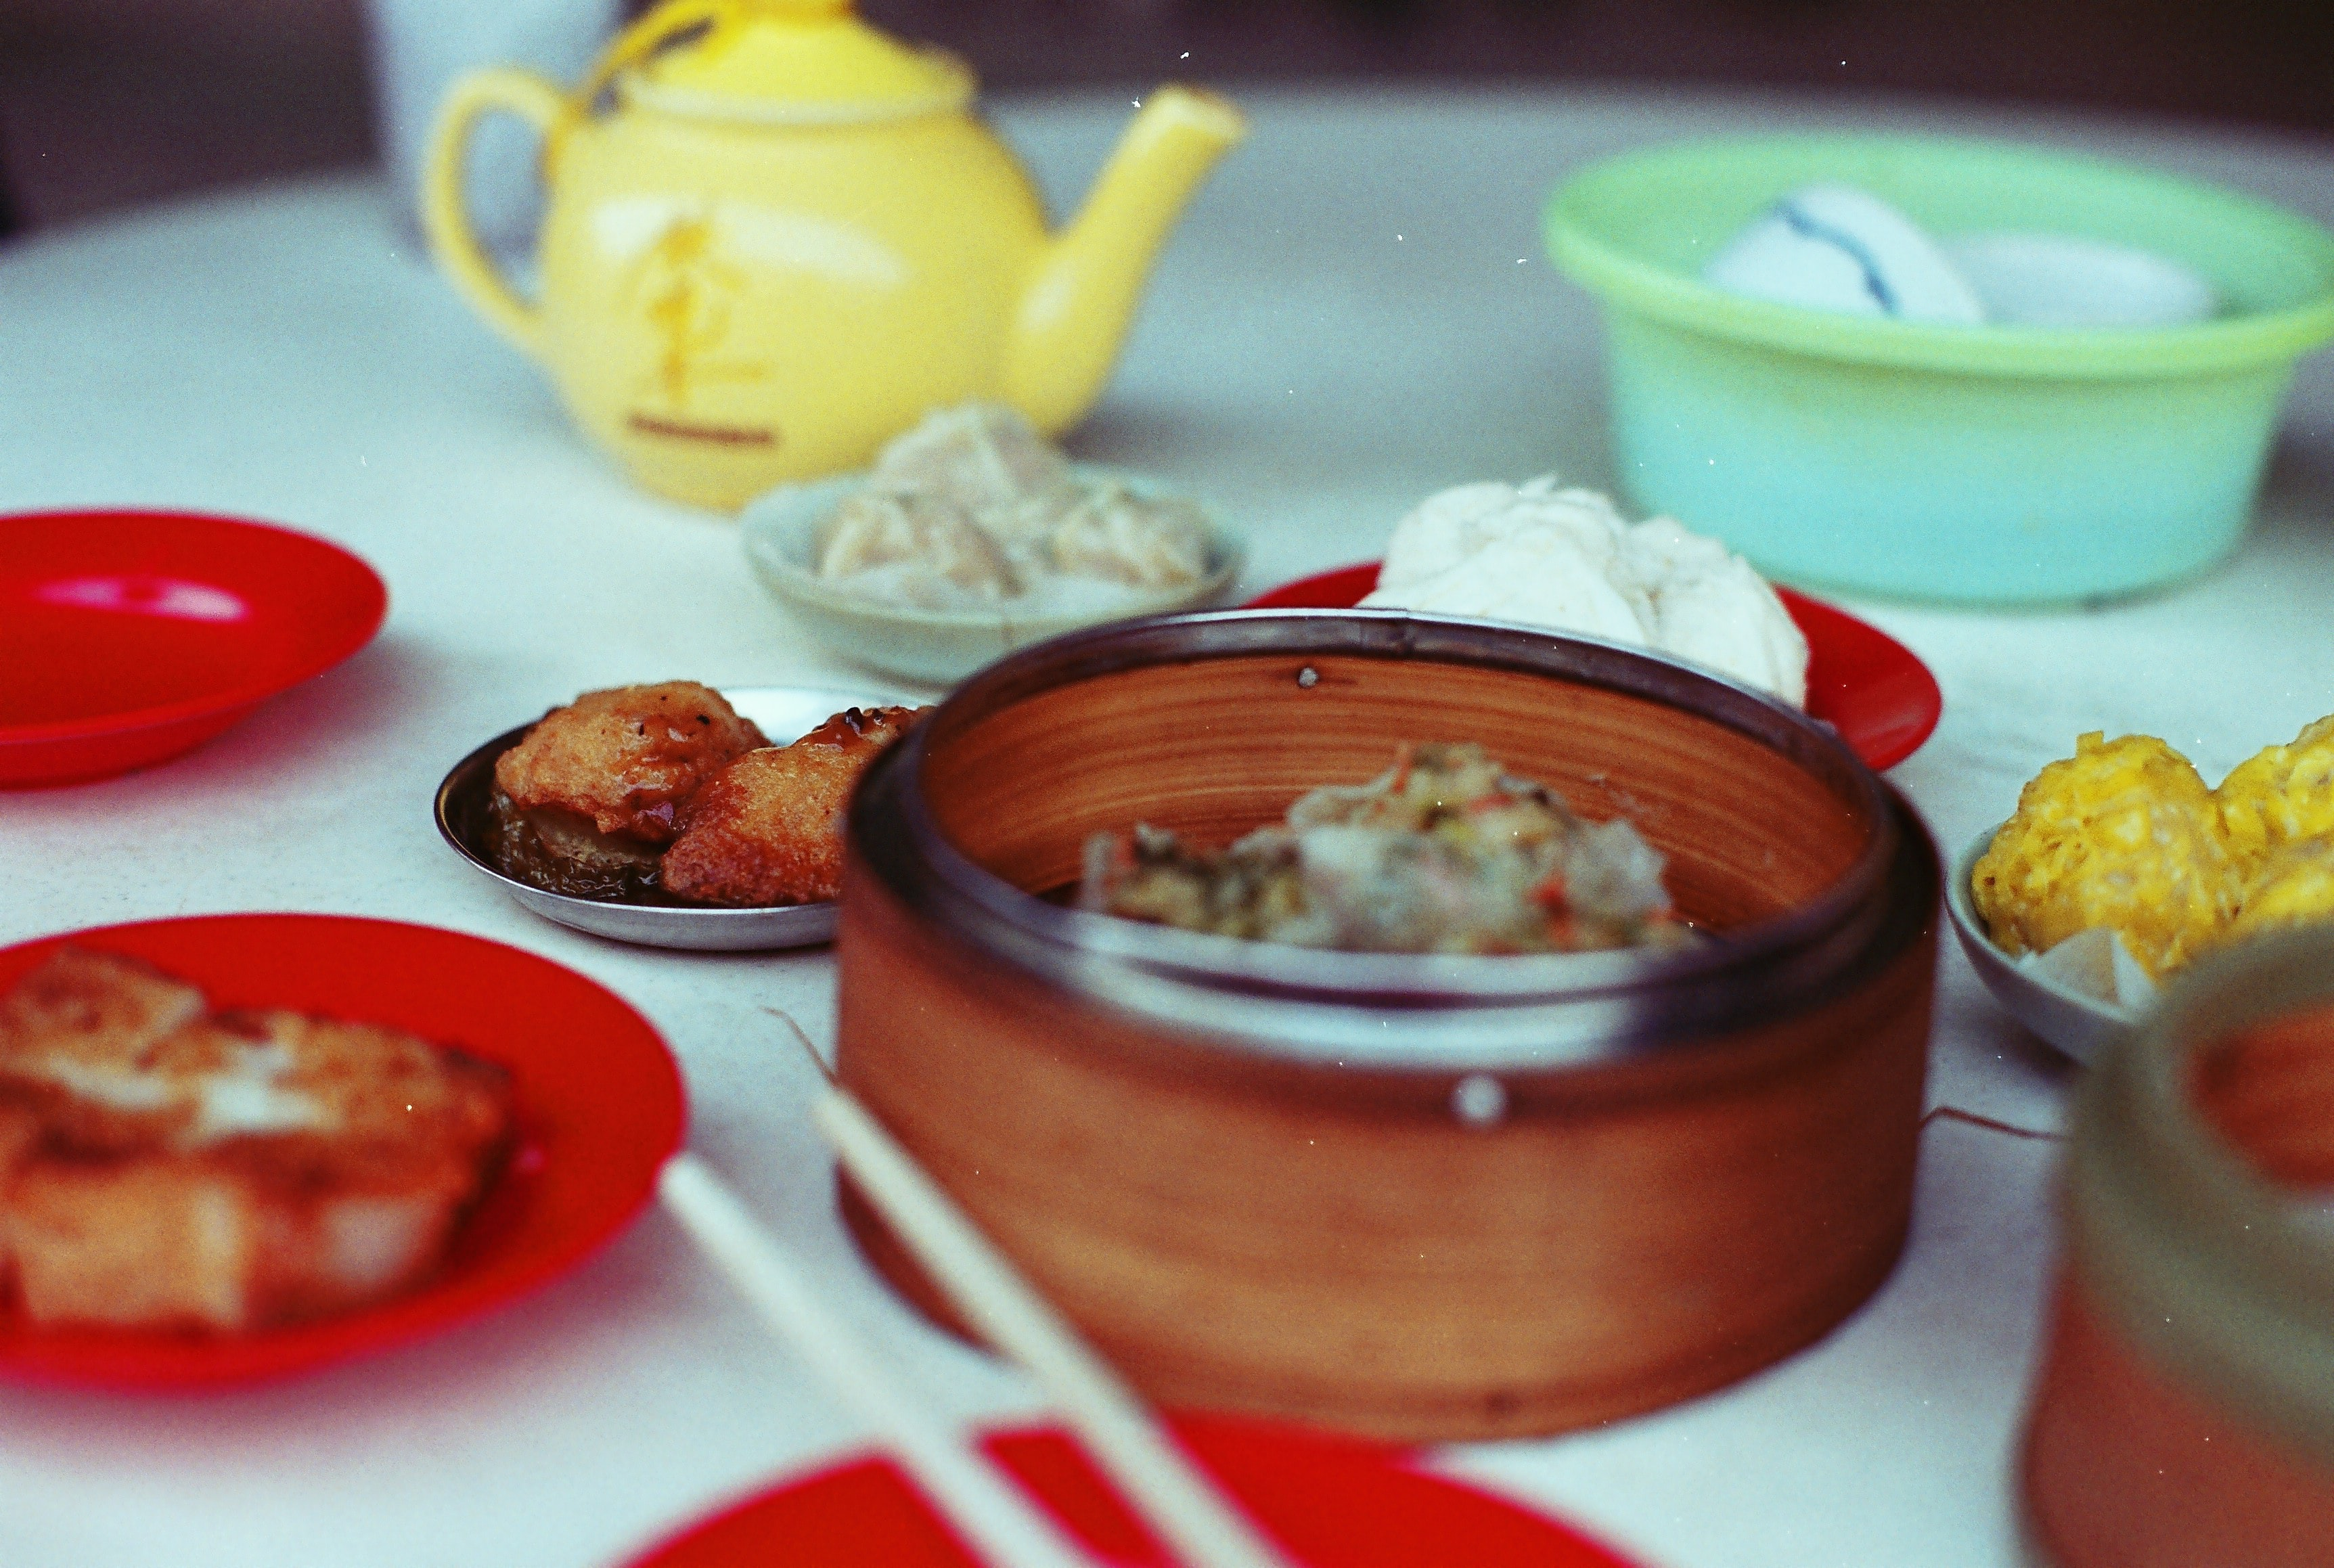 cooked foods on brown bowls and saucers